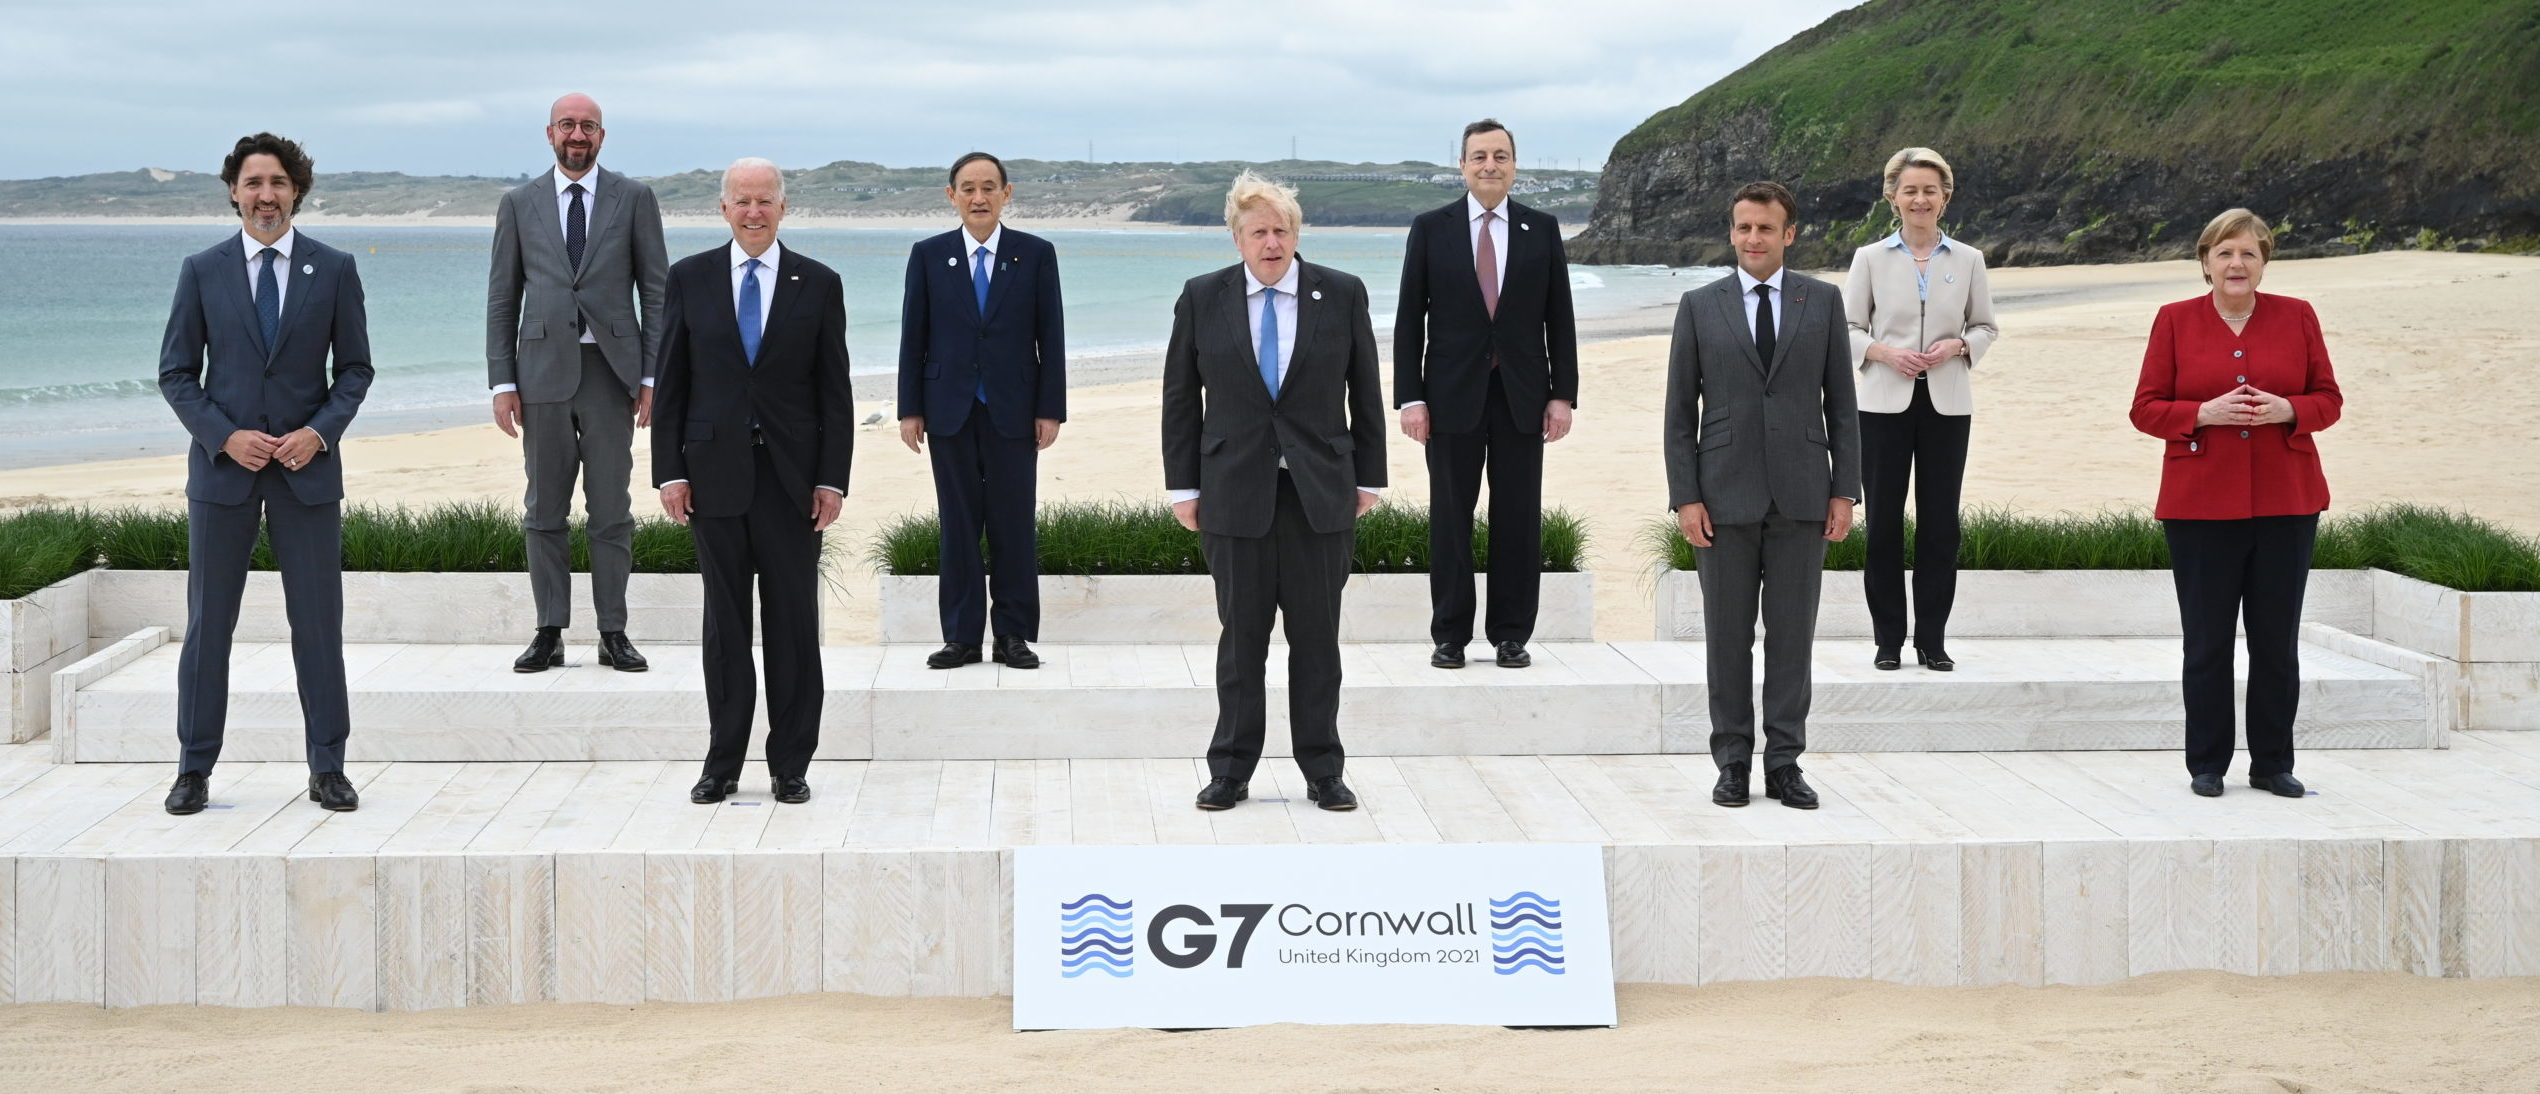 CARBIS BAY, CORNWALL - JUNE 11: (L-R) Canadian Prime Minister Justin Trudeau, President of the European Council Charles Michel, US President Joe Biden, Japanese Prime Minister Yoshihide Suga, British Prime Minister Boris Johnson, Italian Prime Minister Mario Draghi, French President Emmanuel Macron, President of the European Commission Ursula von der Leyen and German Chancellor Angela Merkel, pose for the Leaders official welcome and family photo during the G7 Summit In Carbis Bay, on June 11, 2021 in Carbis Bay, Cornwall. UK Prime Minister, Boris Johnson, hosts leaders from the USA, Japan, Germany, France, Italy and Canada at the G7 Summit. This year the UK has invited India, South Africa, and South Korea to attend the Leaders' Summit as guest countries as well as the EU. (Leon Neal - WPA Pool/Getty Images)